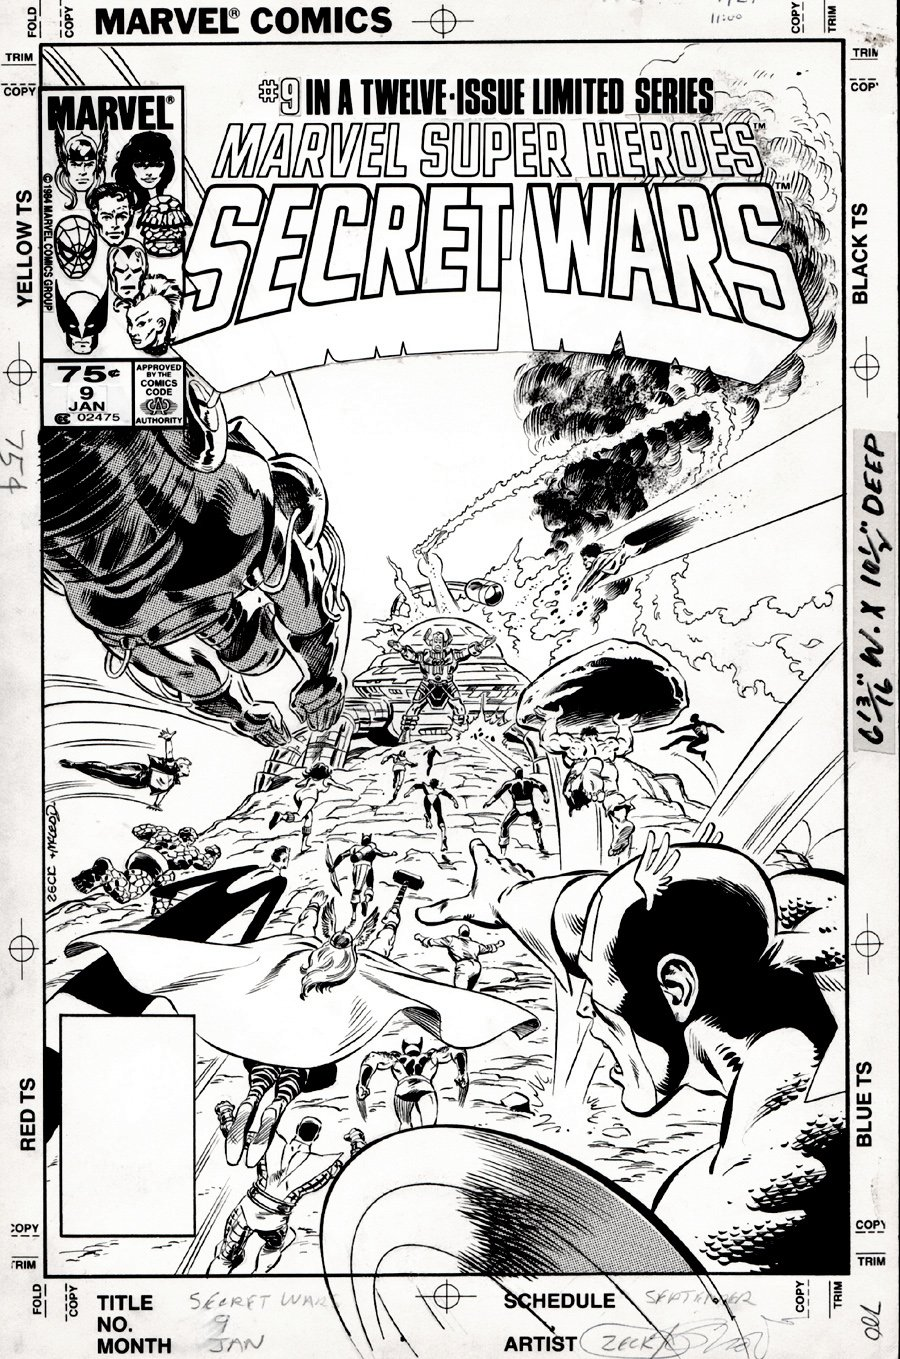 Marvel Super-Heroes Secret Wars #9 Cover (1984) SOLD SOLD SOLD!